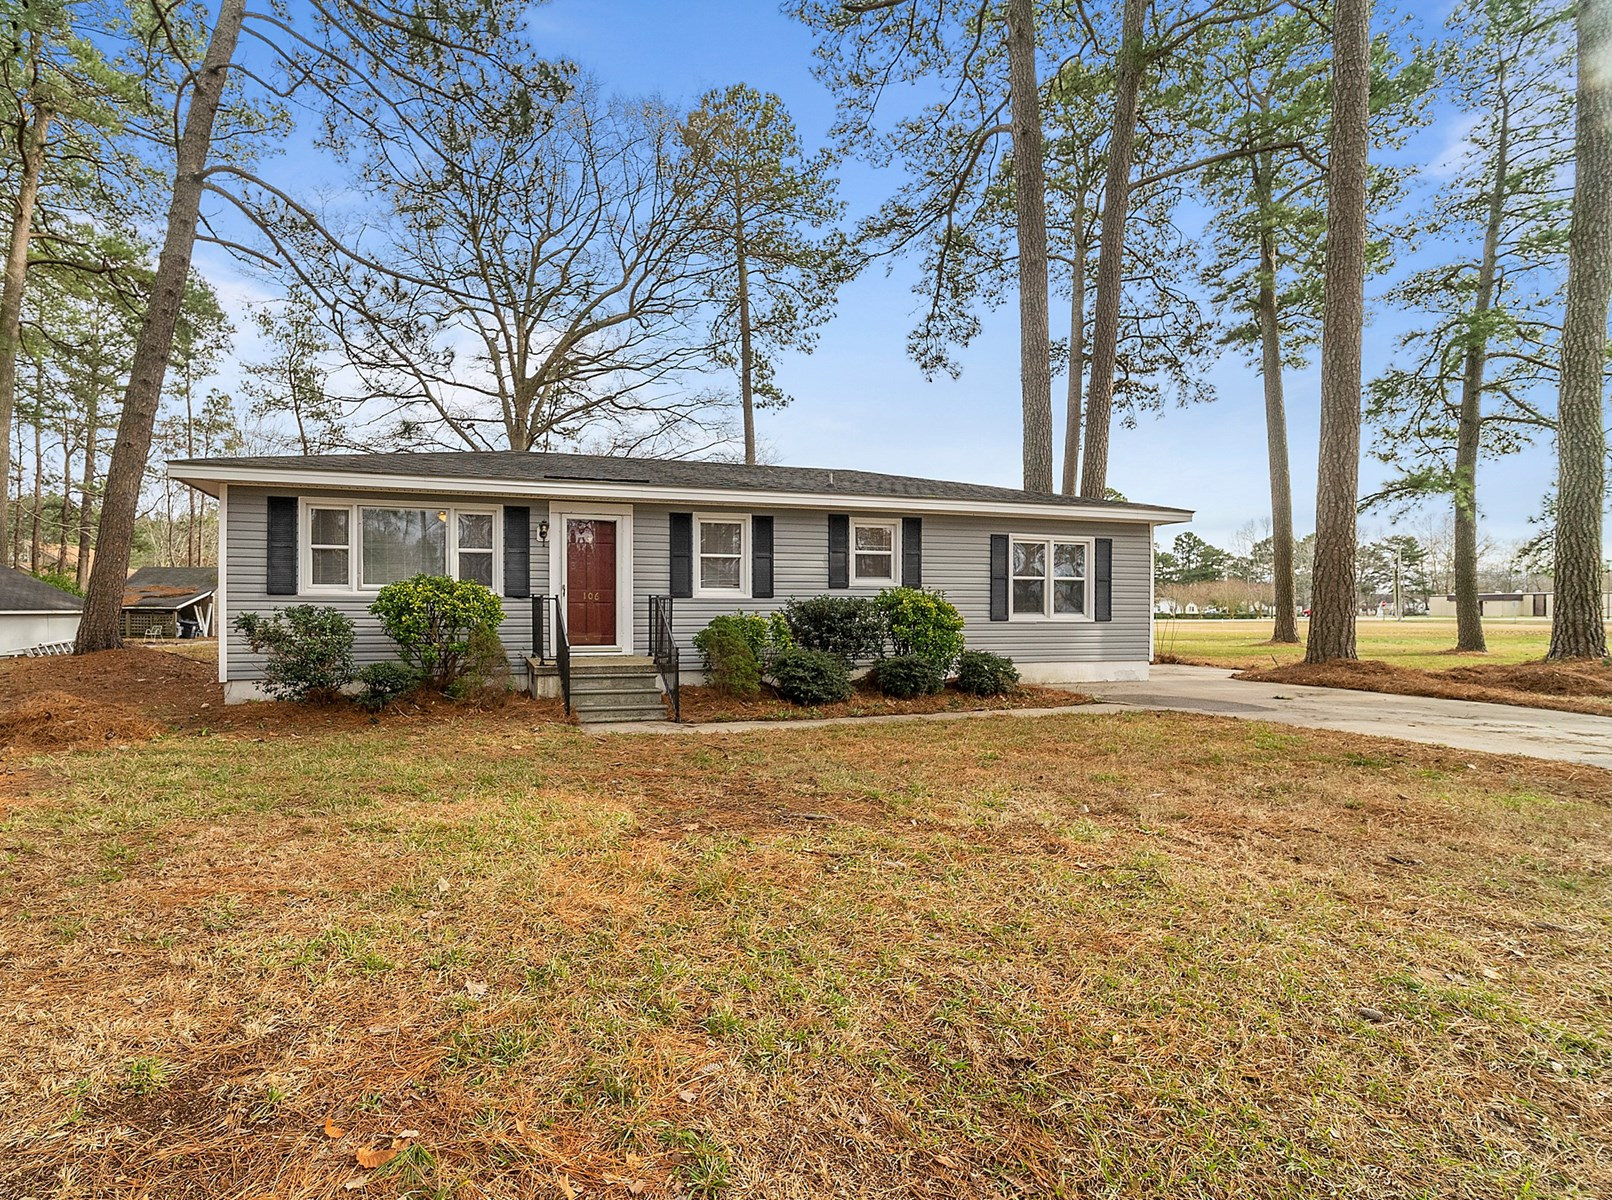 3 Bedroom Single Family Home on 1/2 acre in Elizabeth City